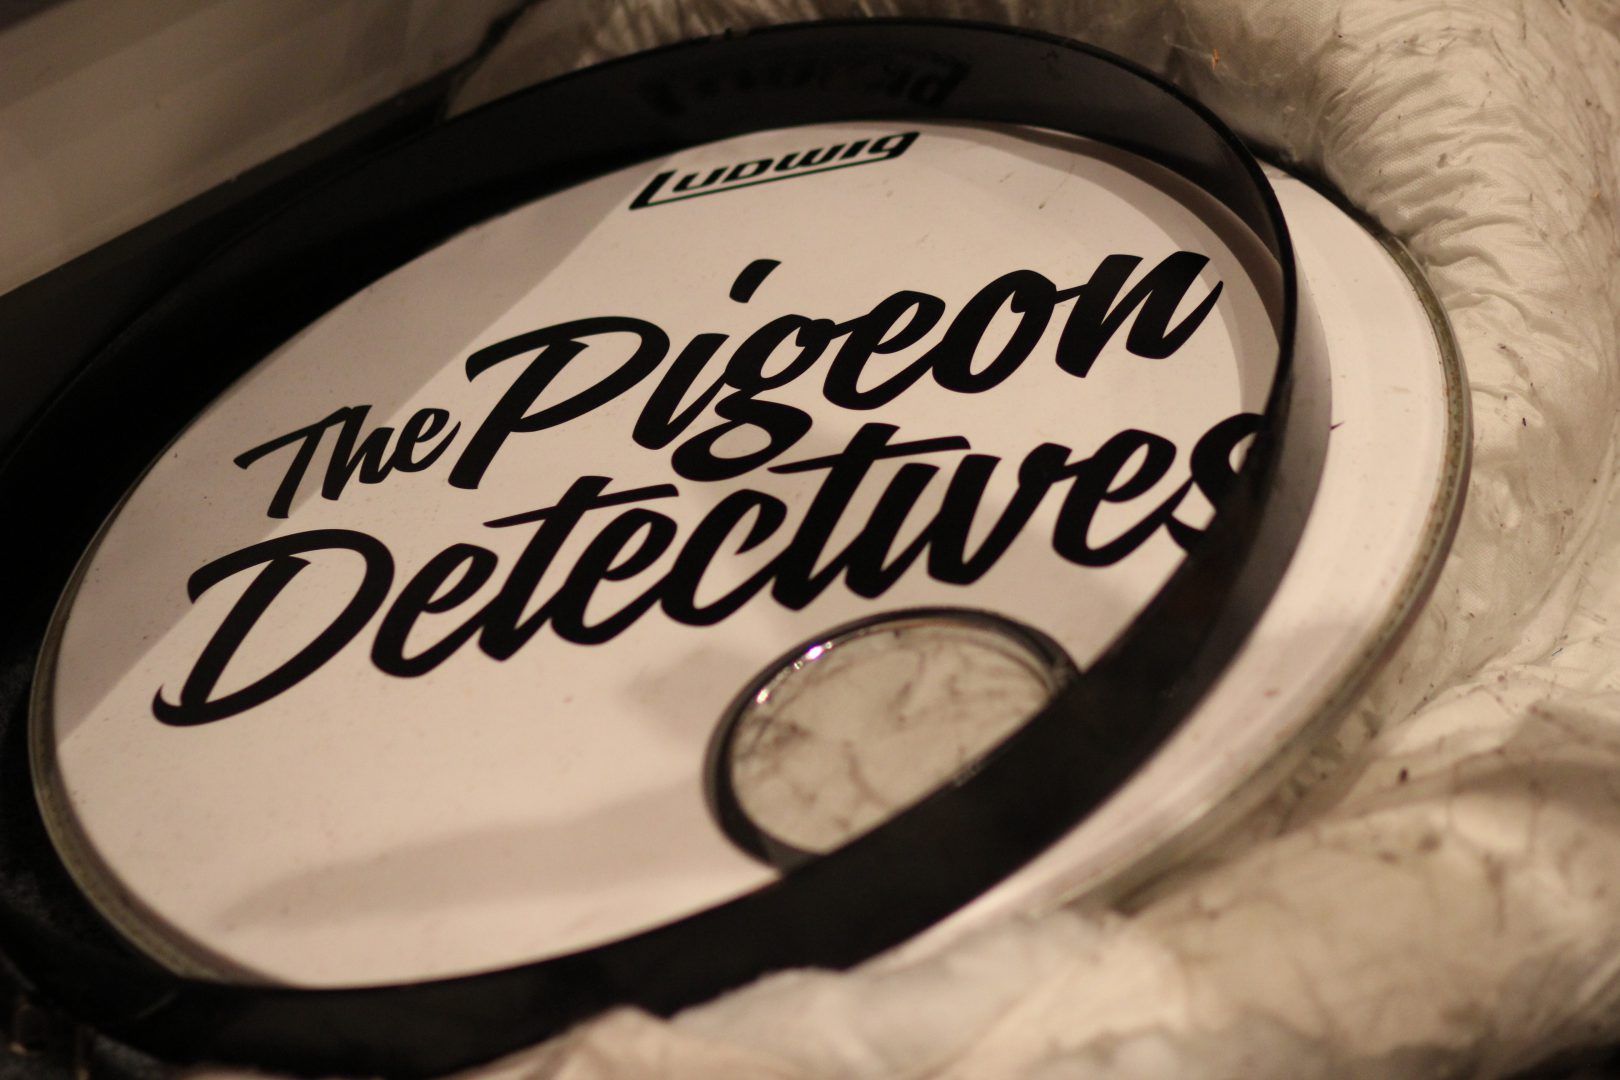 the-pigeon-detectives-drum